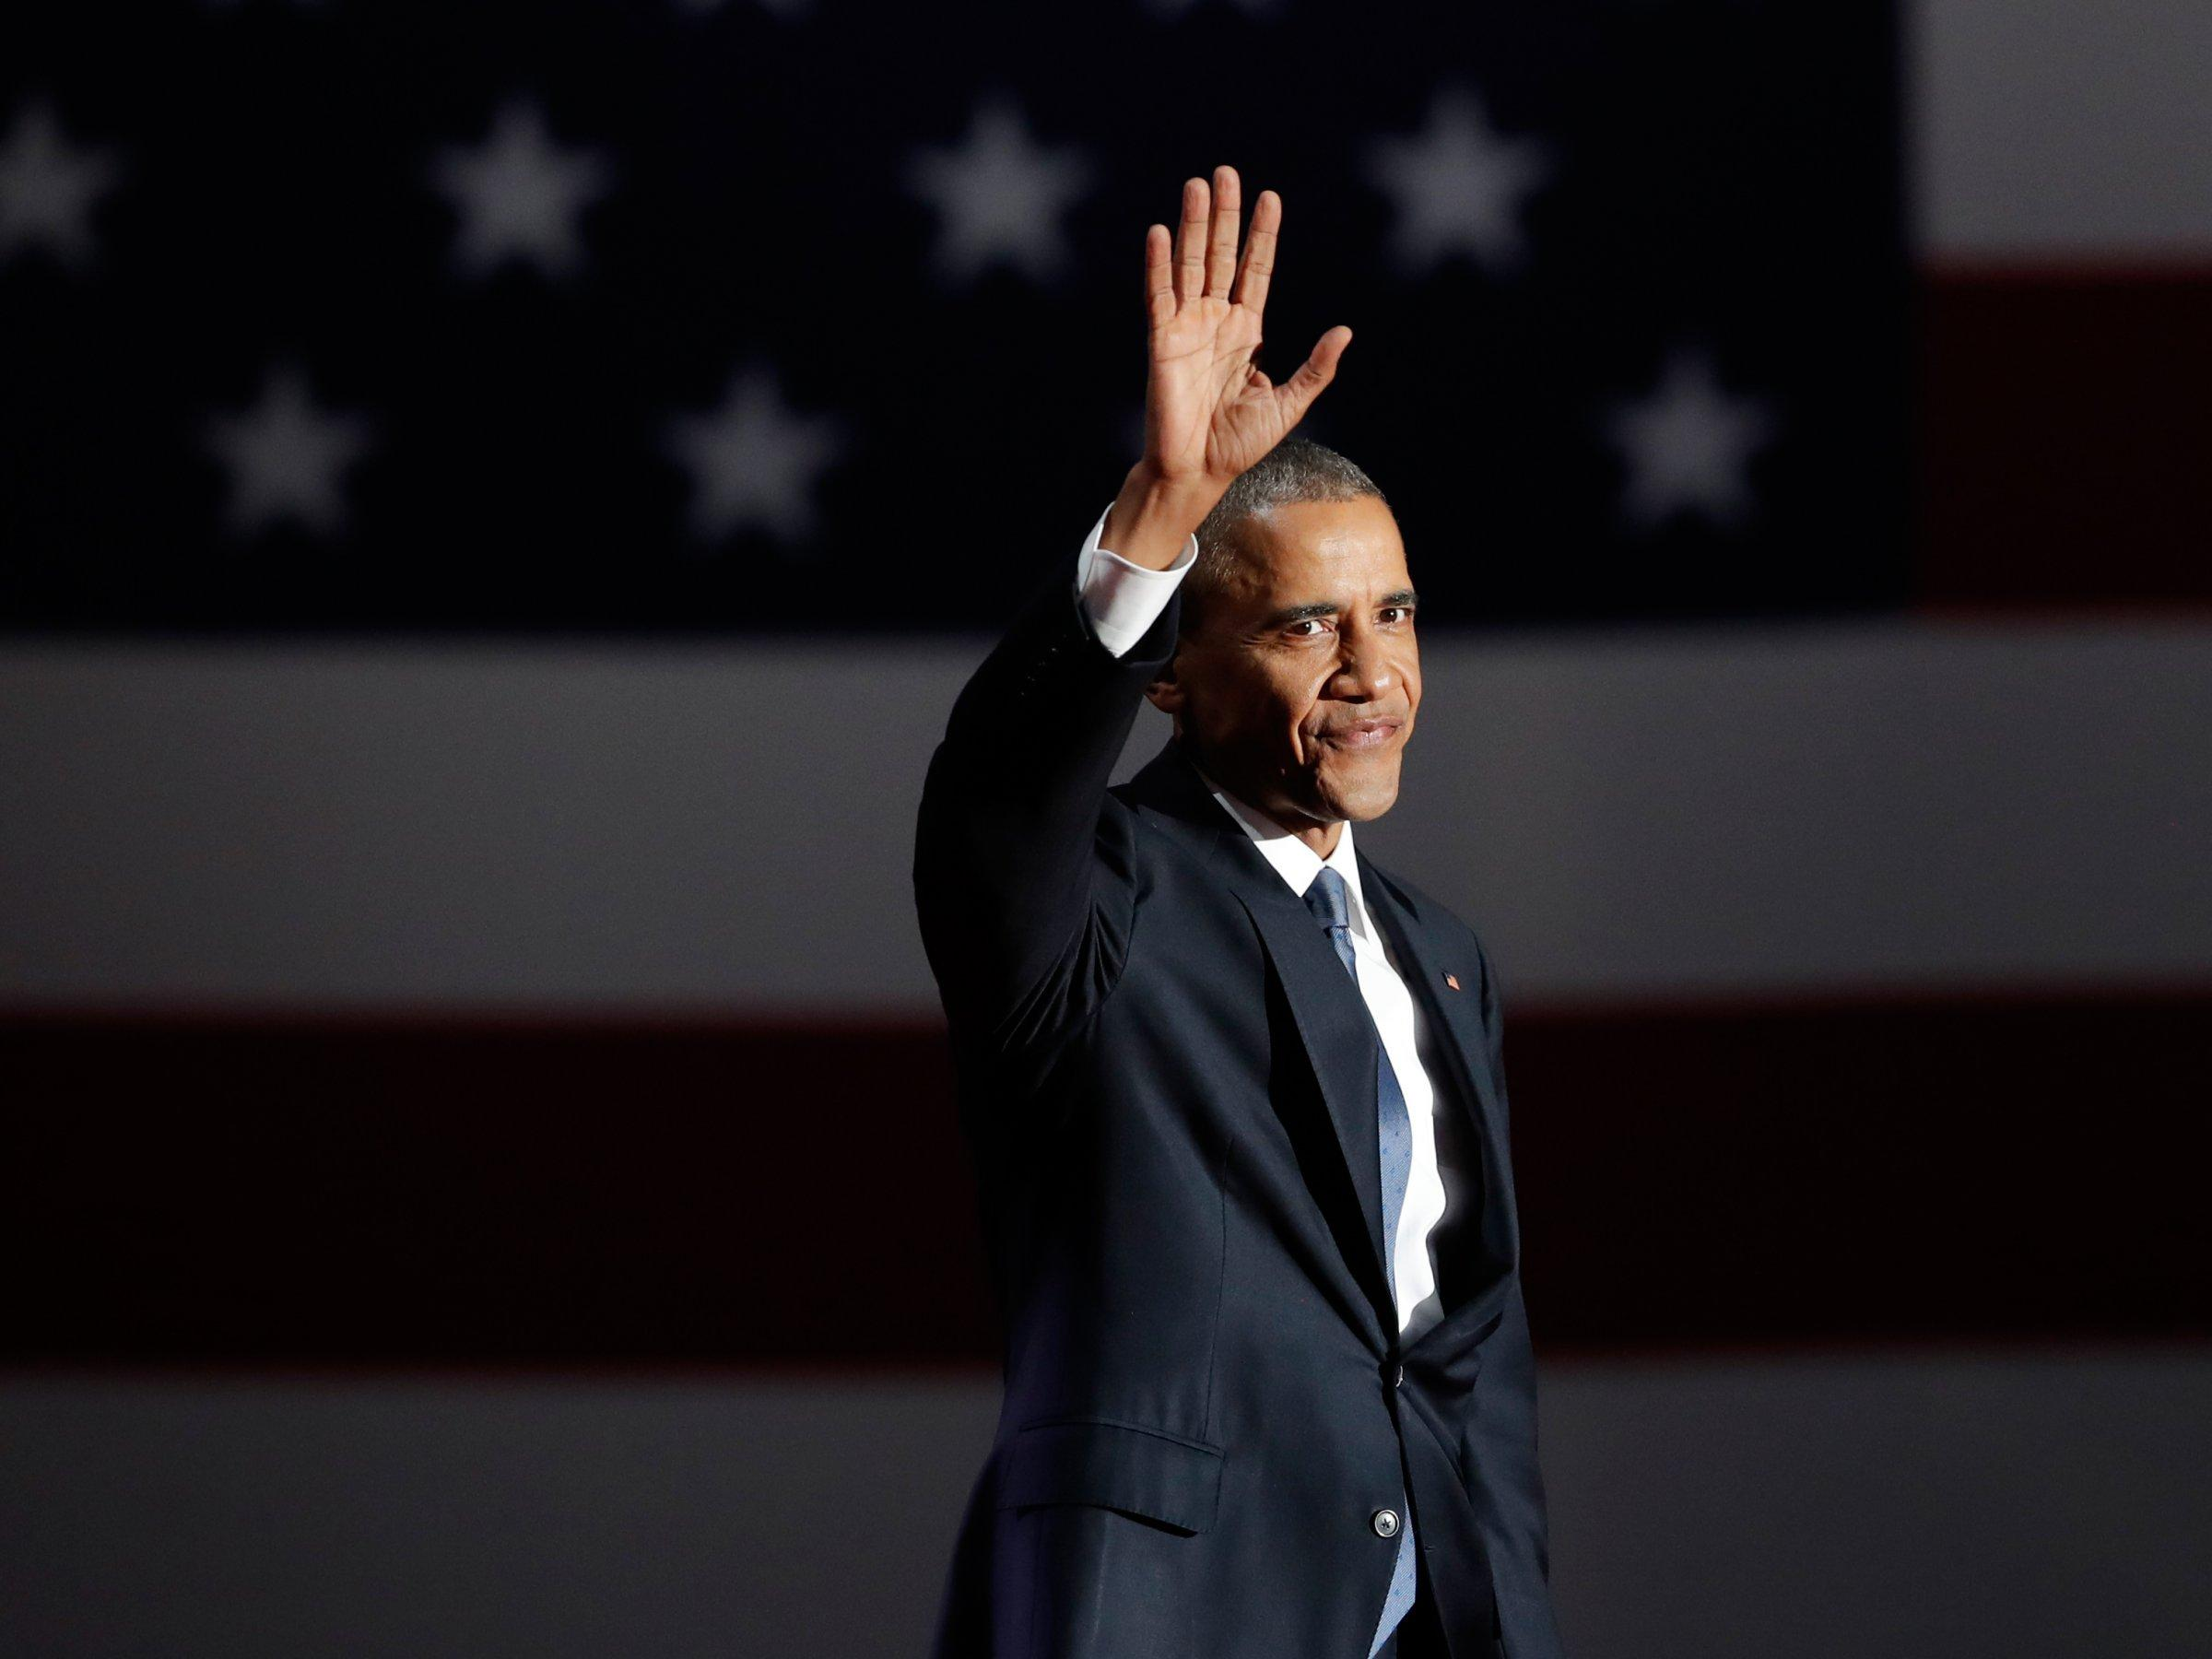 President Barack Obama at his farewell address in Chicago on Tuesday, Jan. 10.